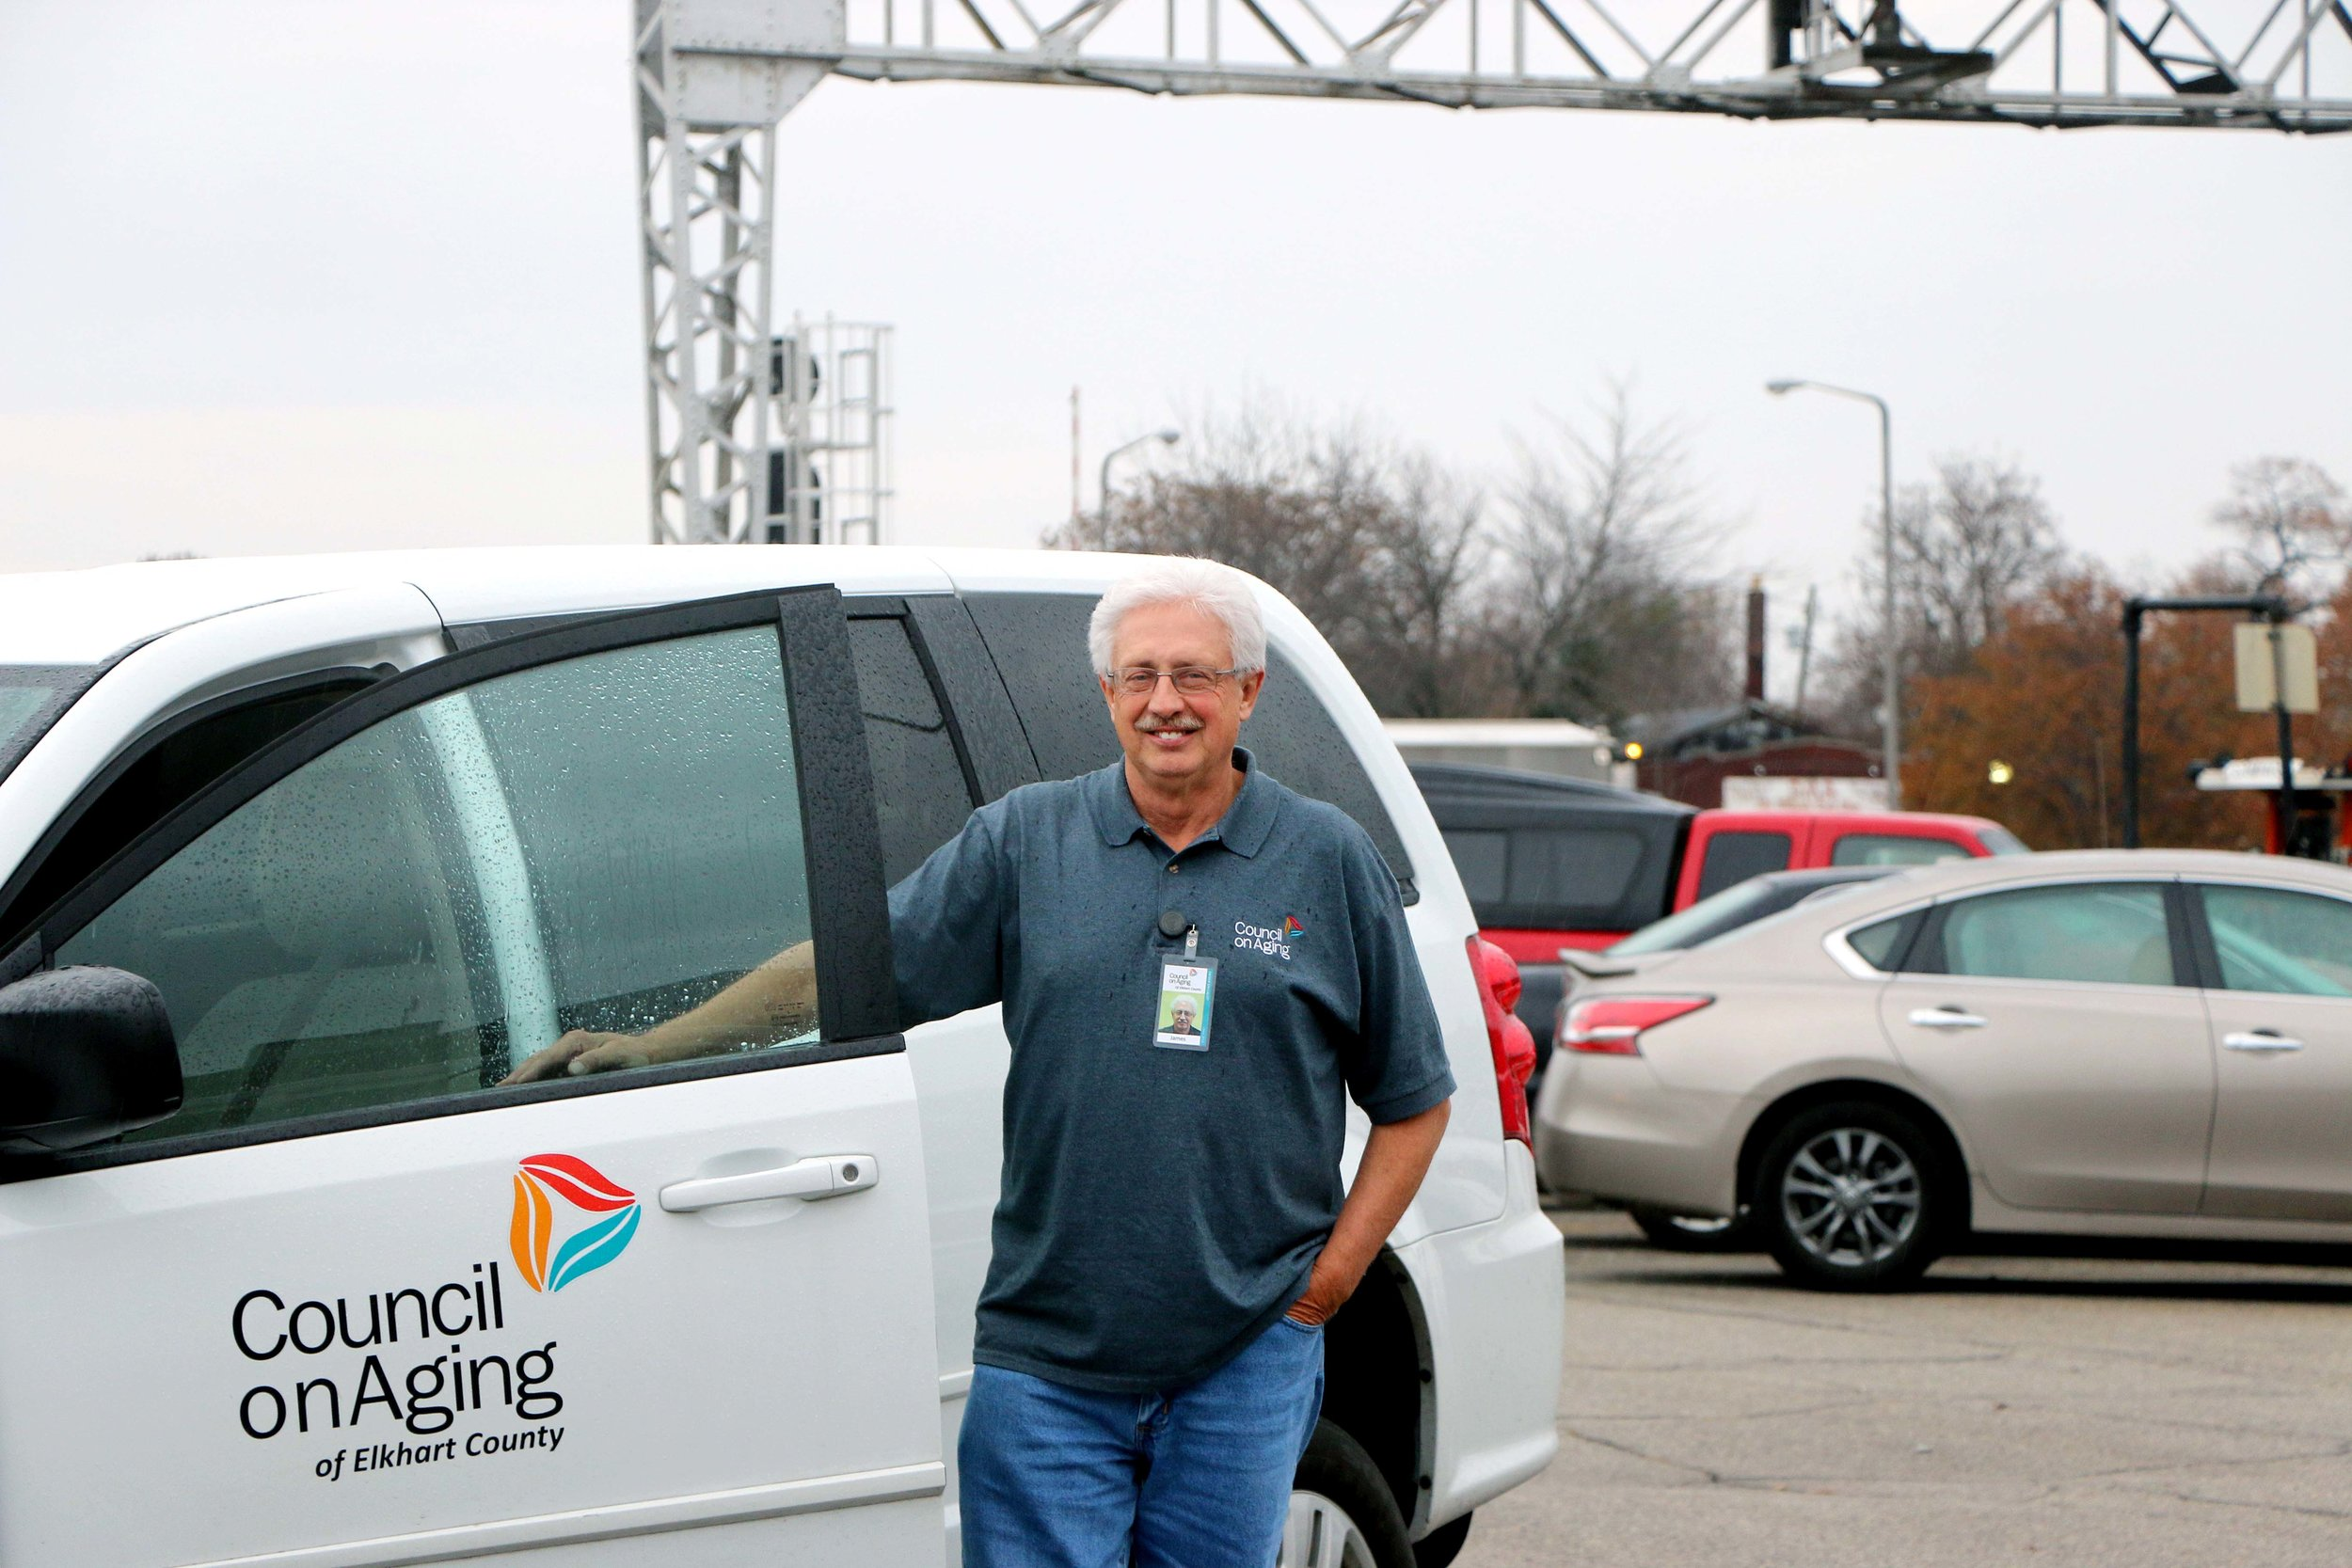 Transportation - Our transportation program seeks to aid those no longer able to transport themselves